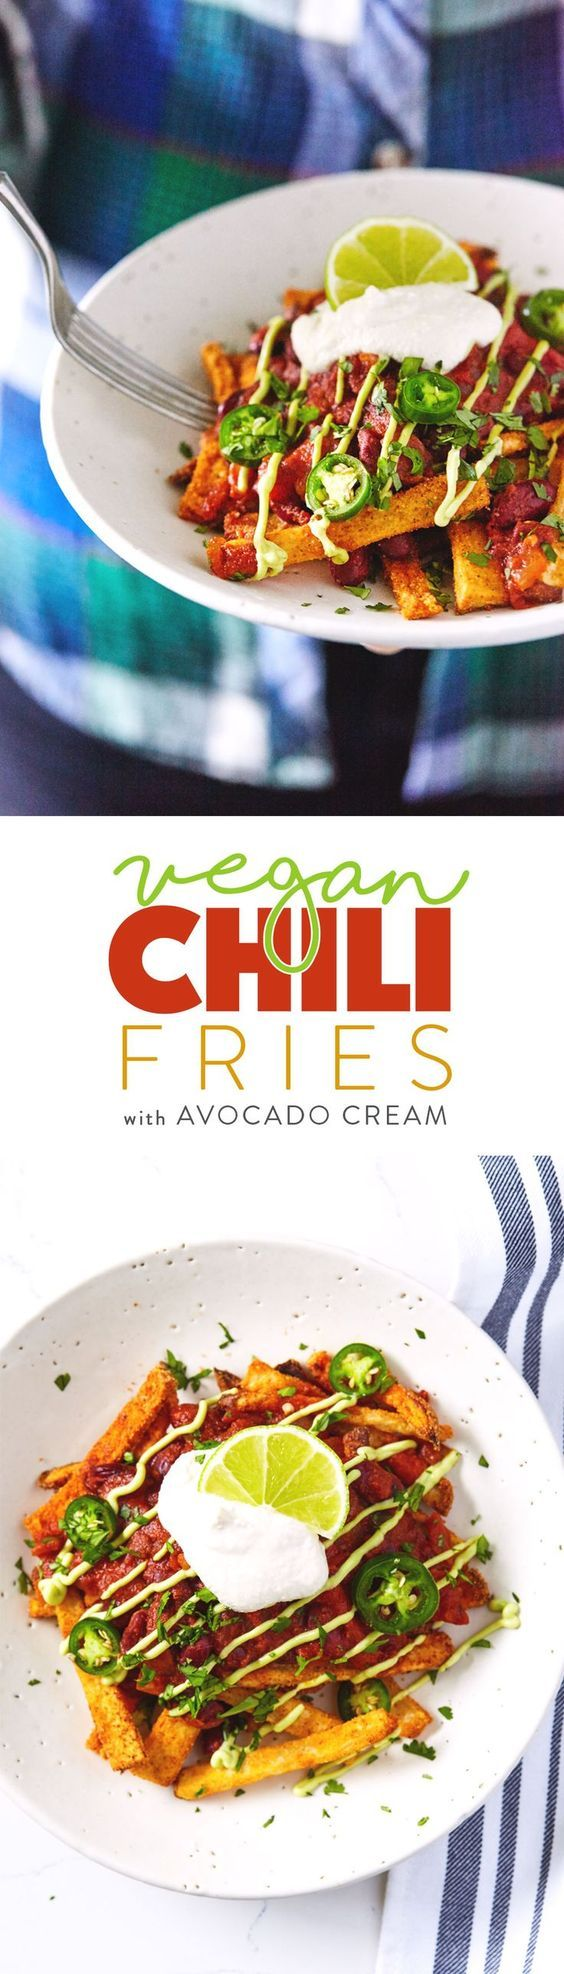 Vegan Chili Fries with Avocado Cream — Natural Girl Modern World